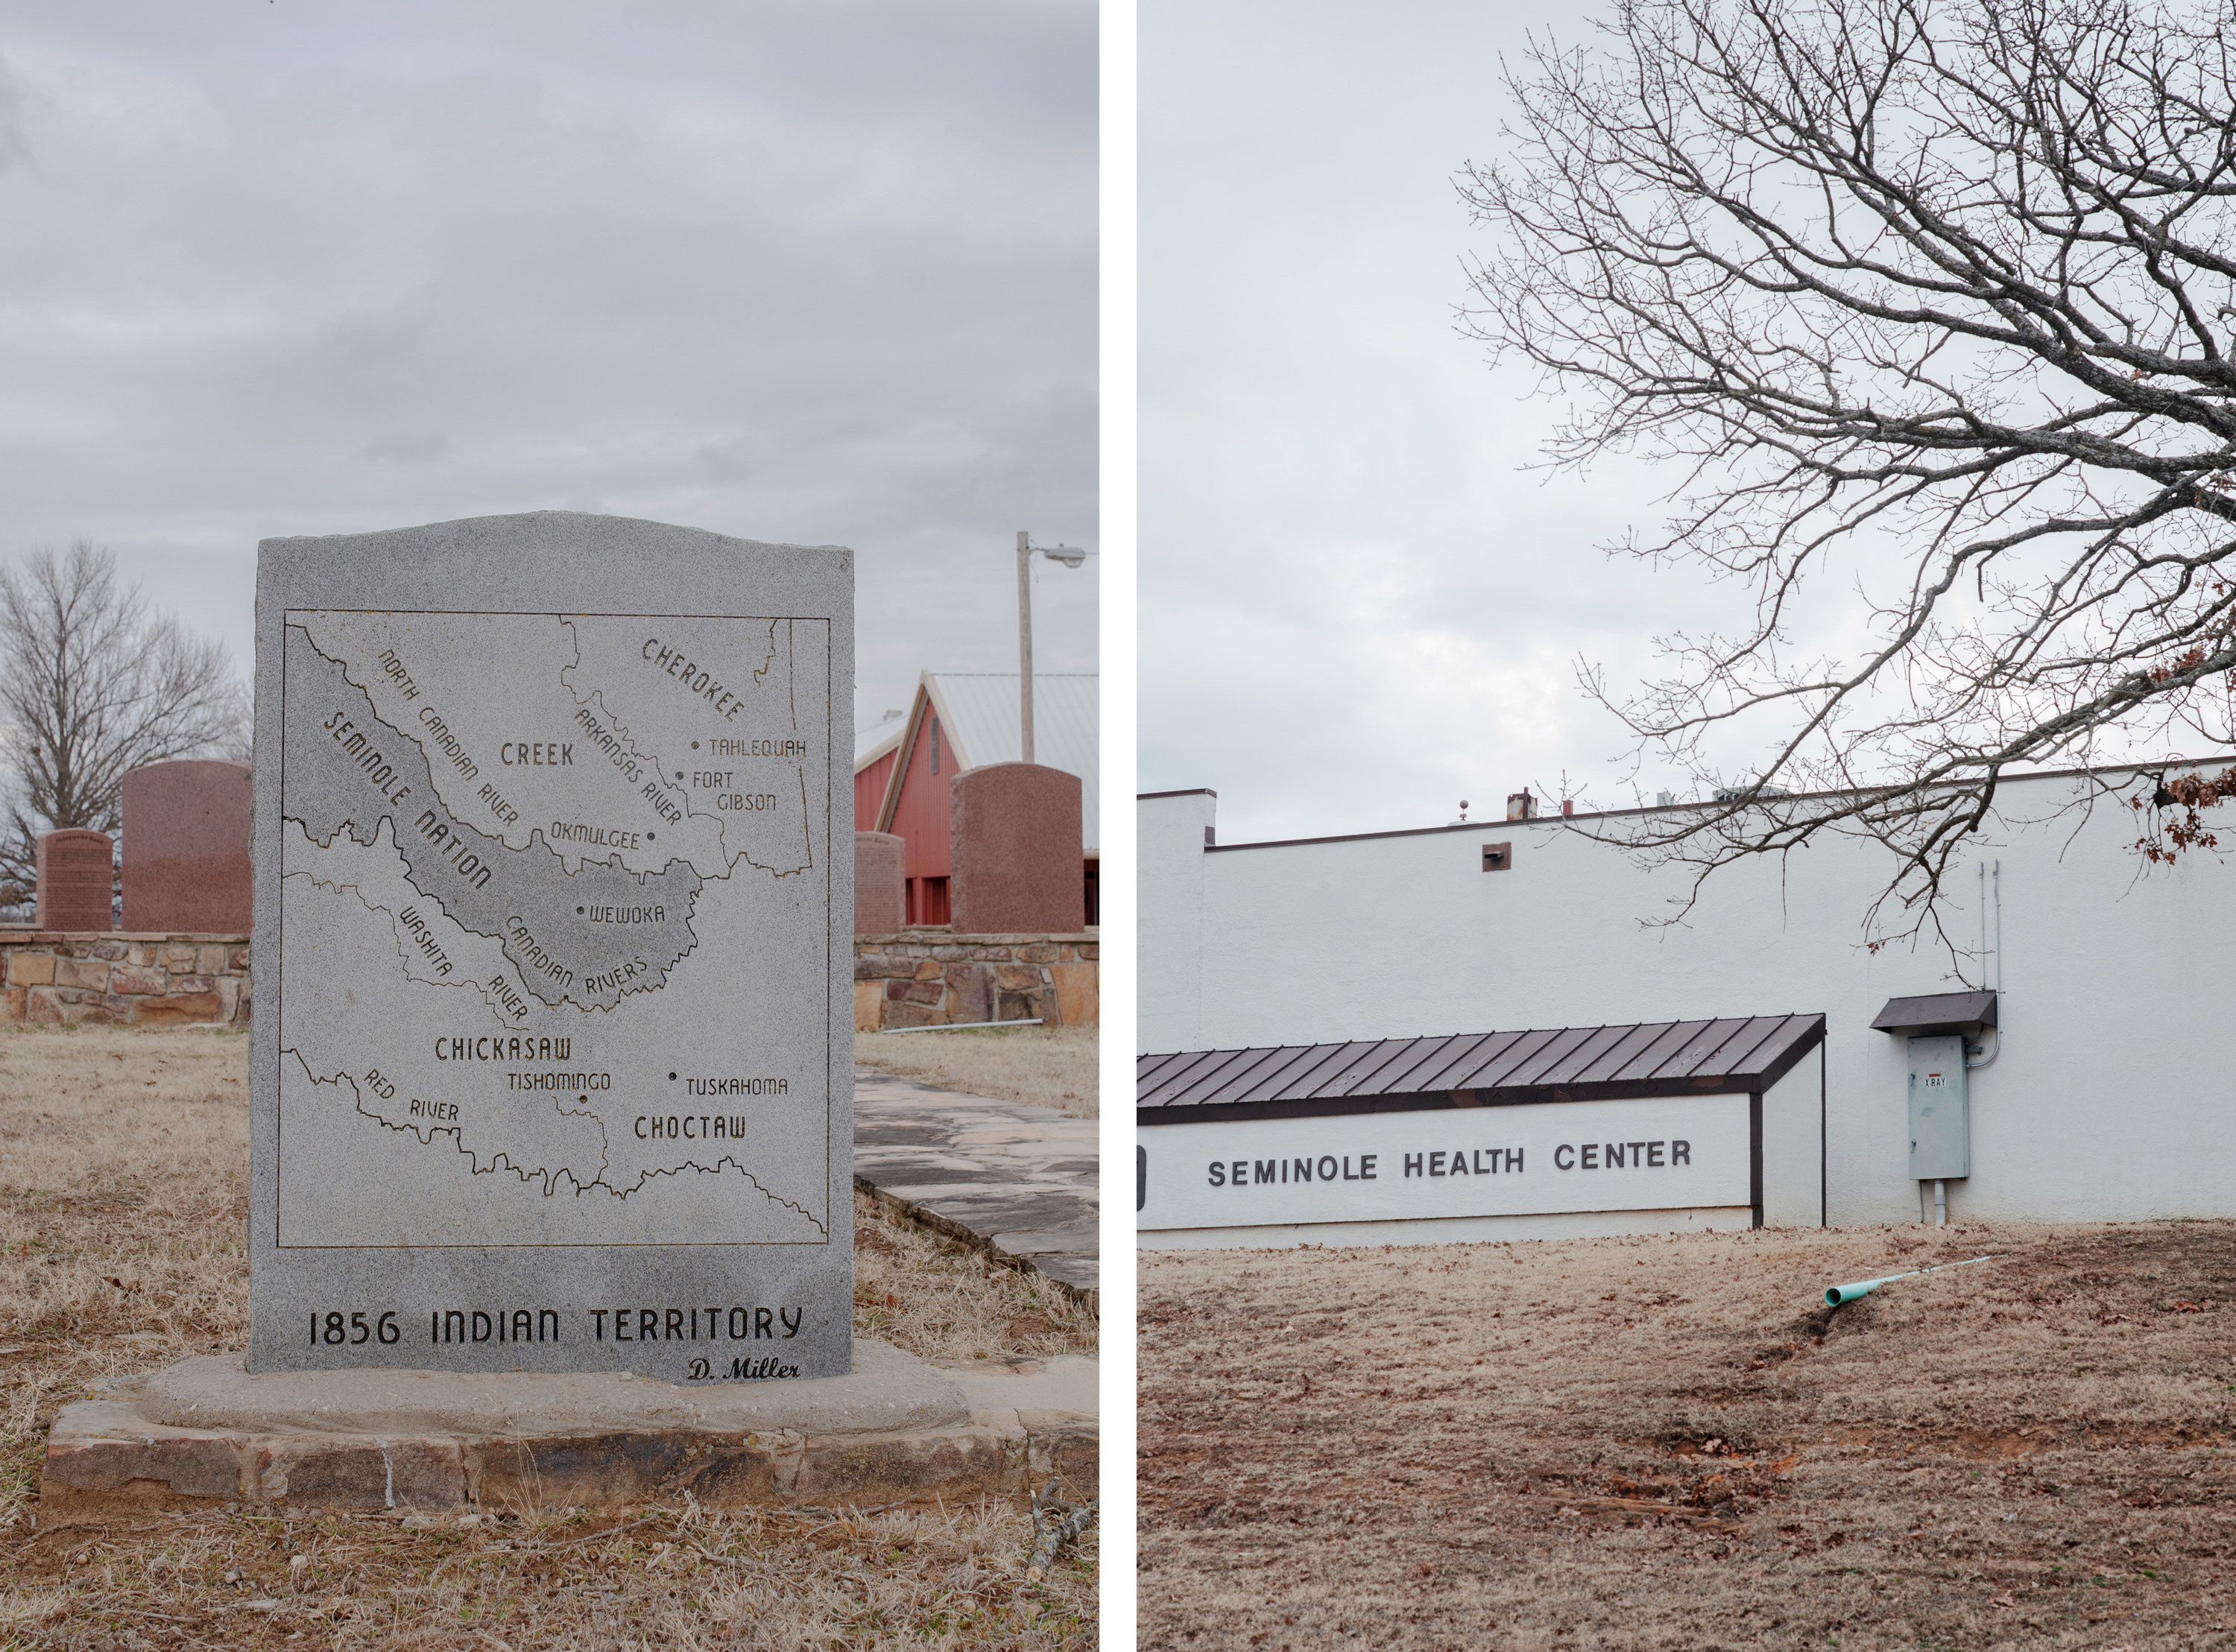 "On the left: A monument reads ""1856 Indian Territory"" and shows how the region was divided among Native tribes. On the right: A building reads ""Seminole Health Center"""